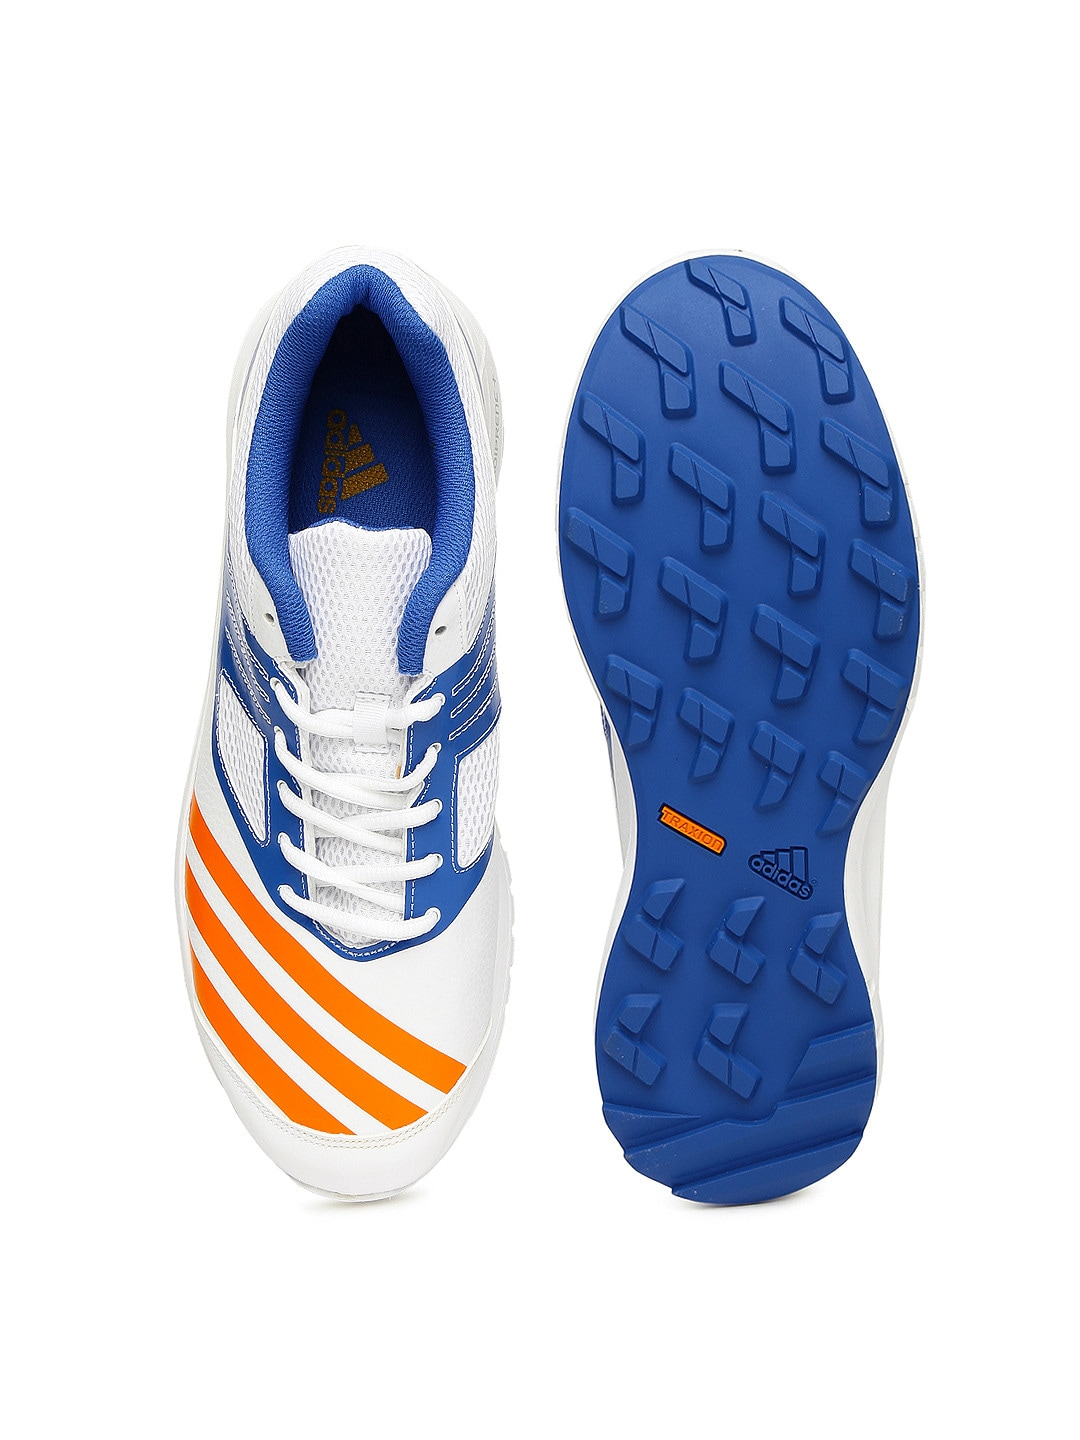 Adidas Cricket Shoes Rubber Sole